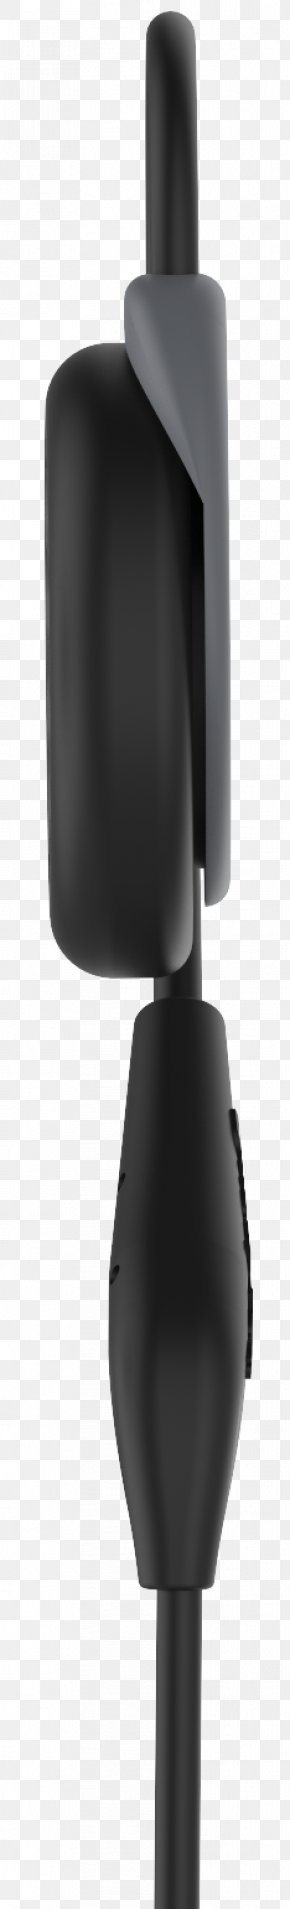 Wireless Headset For Cell Phones - Wireless Headphones Microphone Product Apple Earbuds PNG